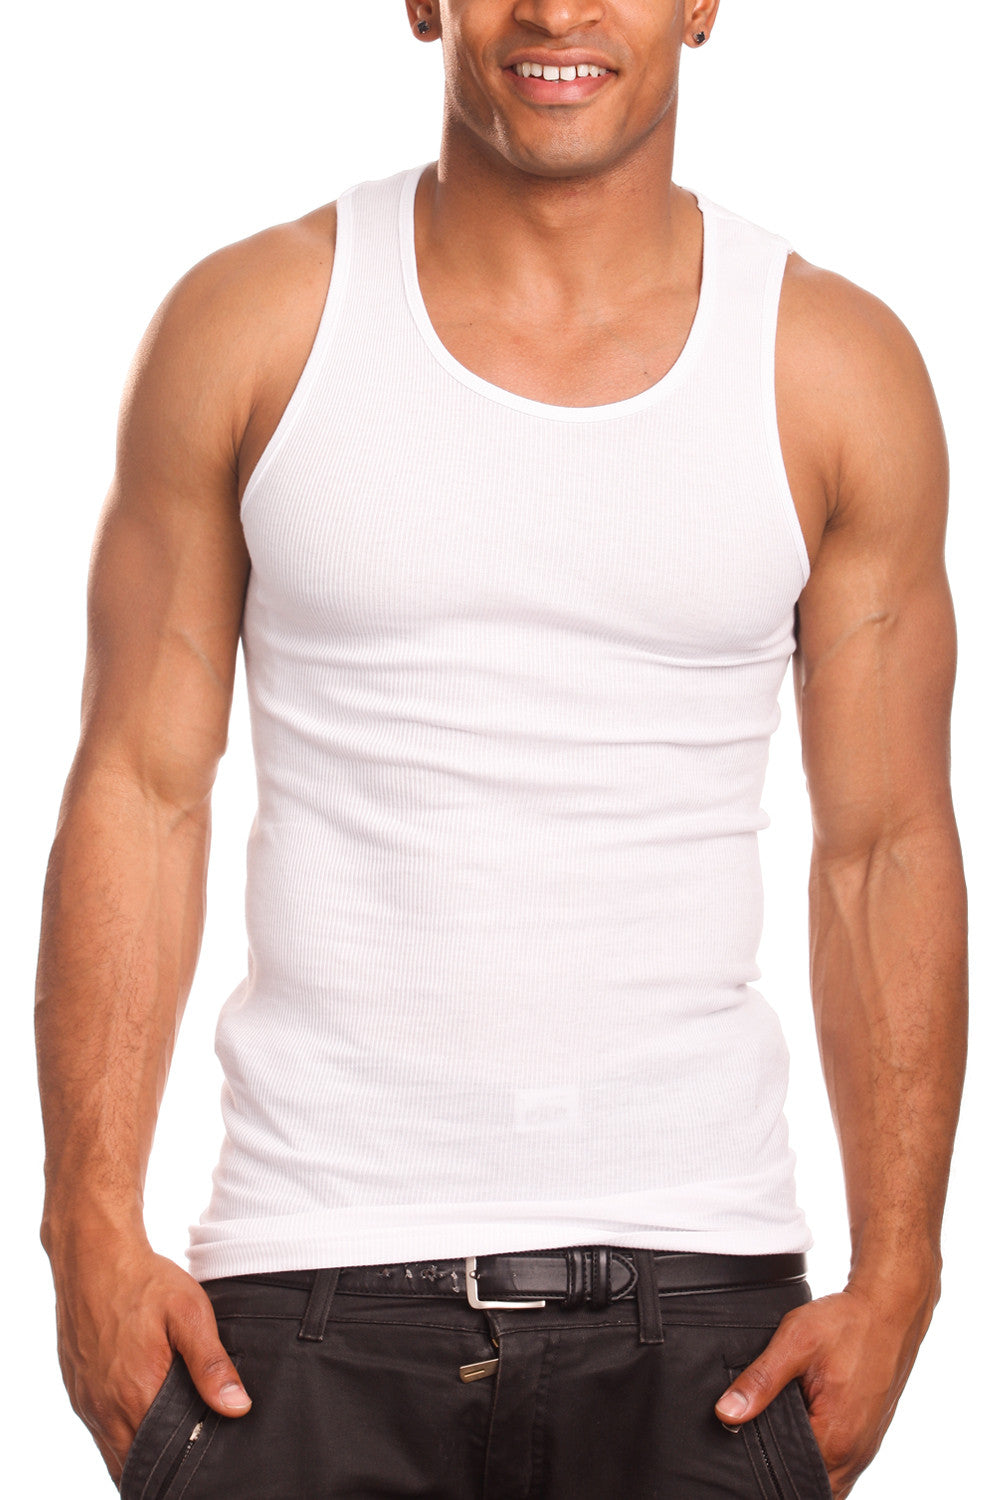 A-shirts (3 pack)-White - Pro 5 Apparel